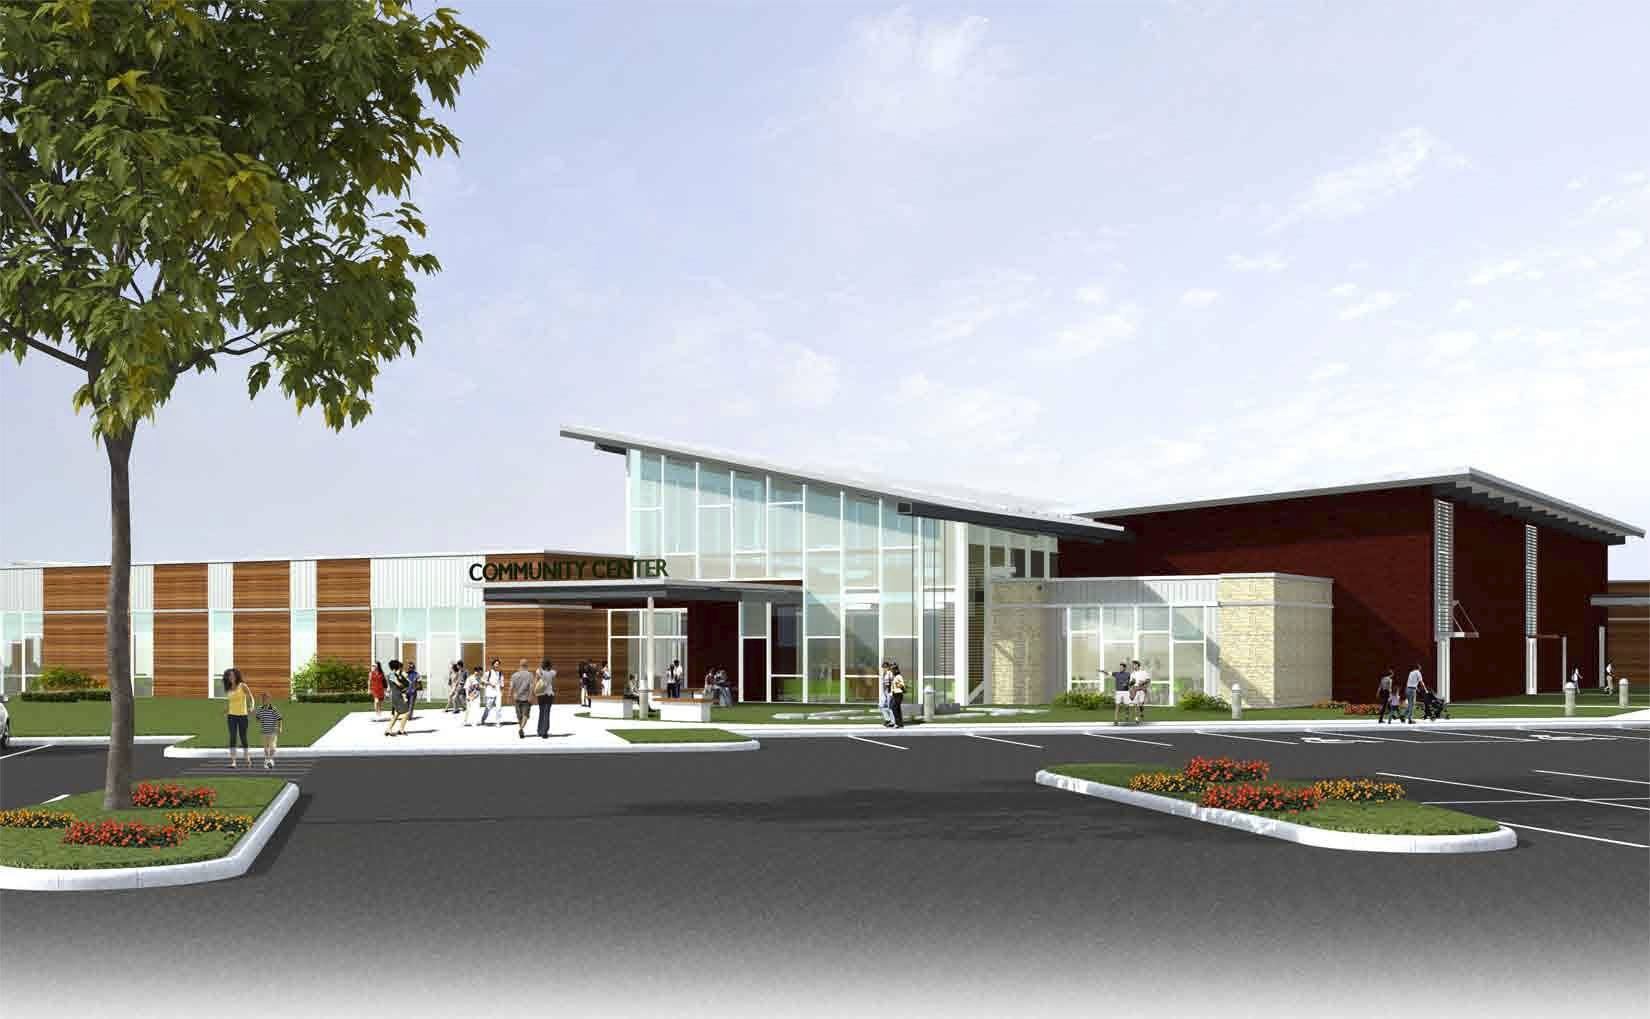 The DuPage County Health Department wants to build a community center at 111 N. County Farm Road that would house offices, a 24-hour care center and the headquarters for the DuPage County chapter of the National Alliance on Mental Illness.